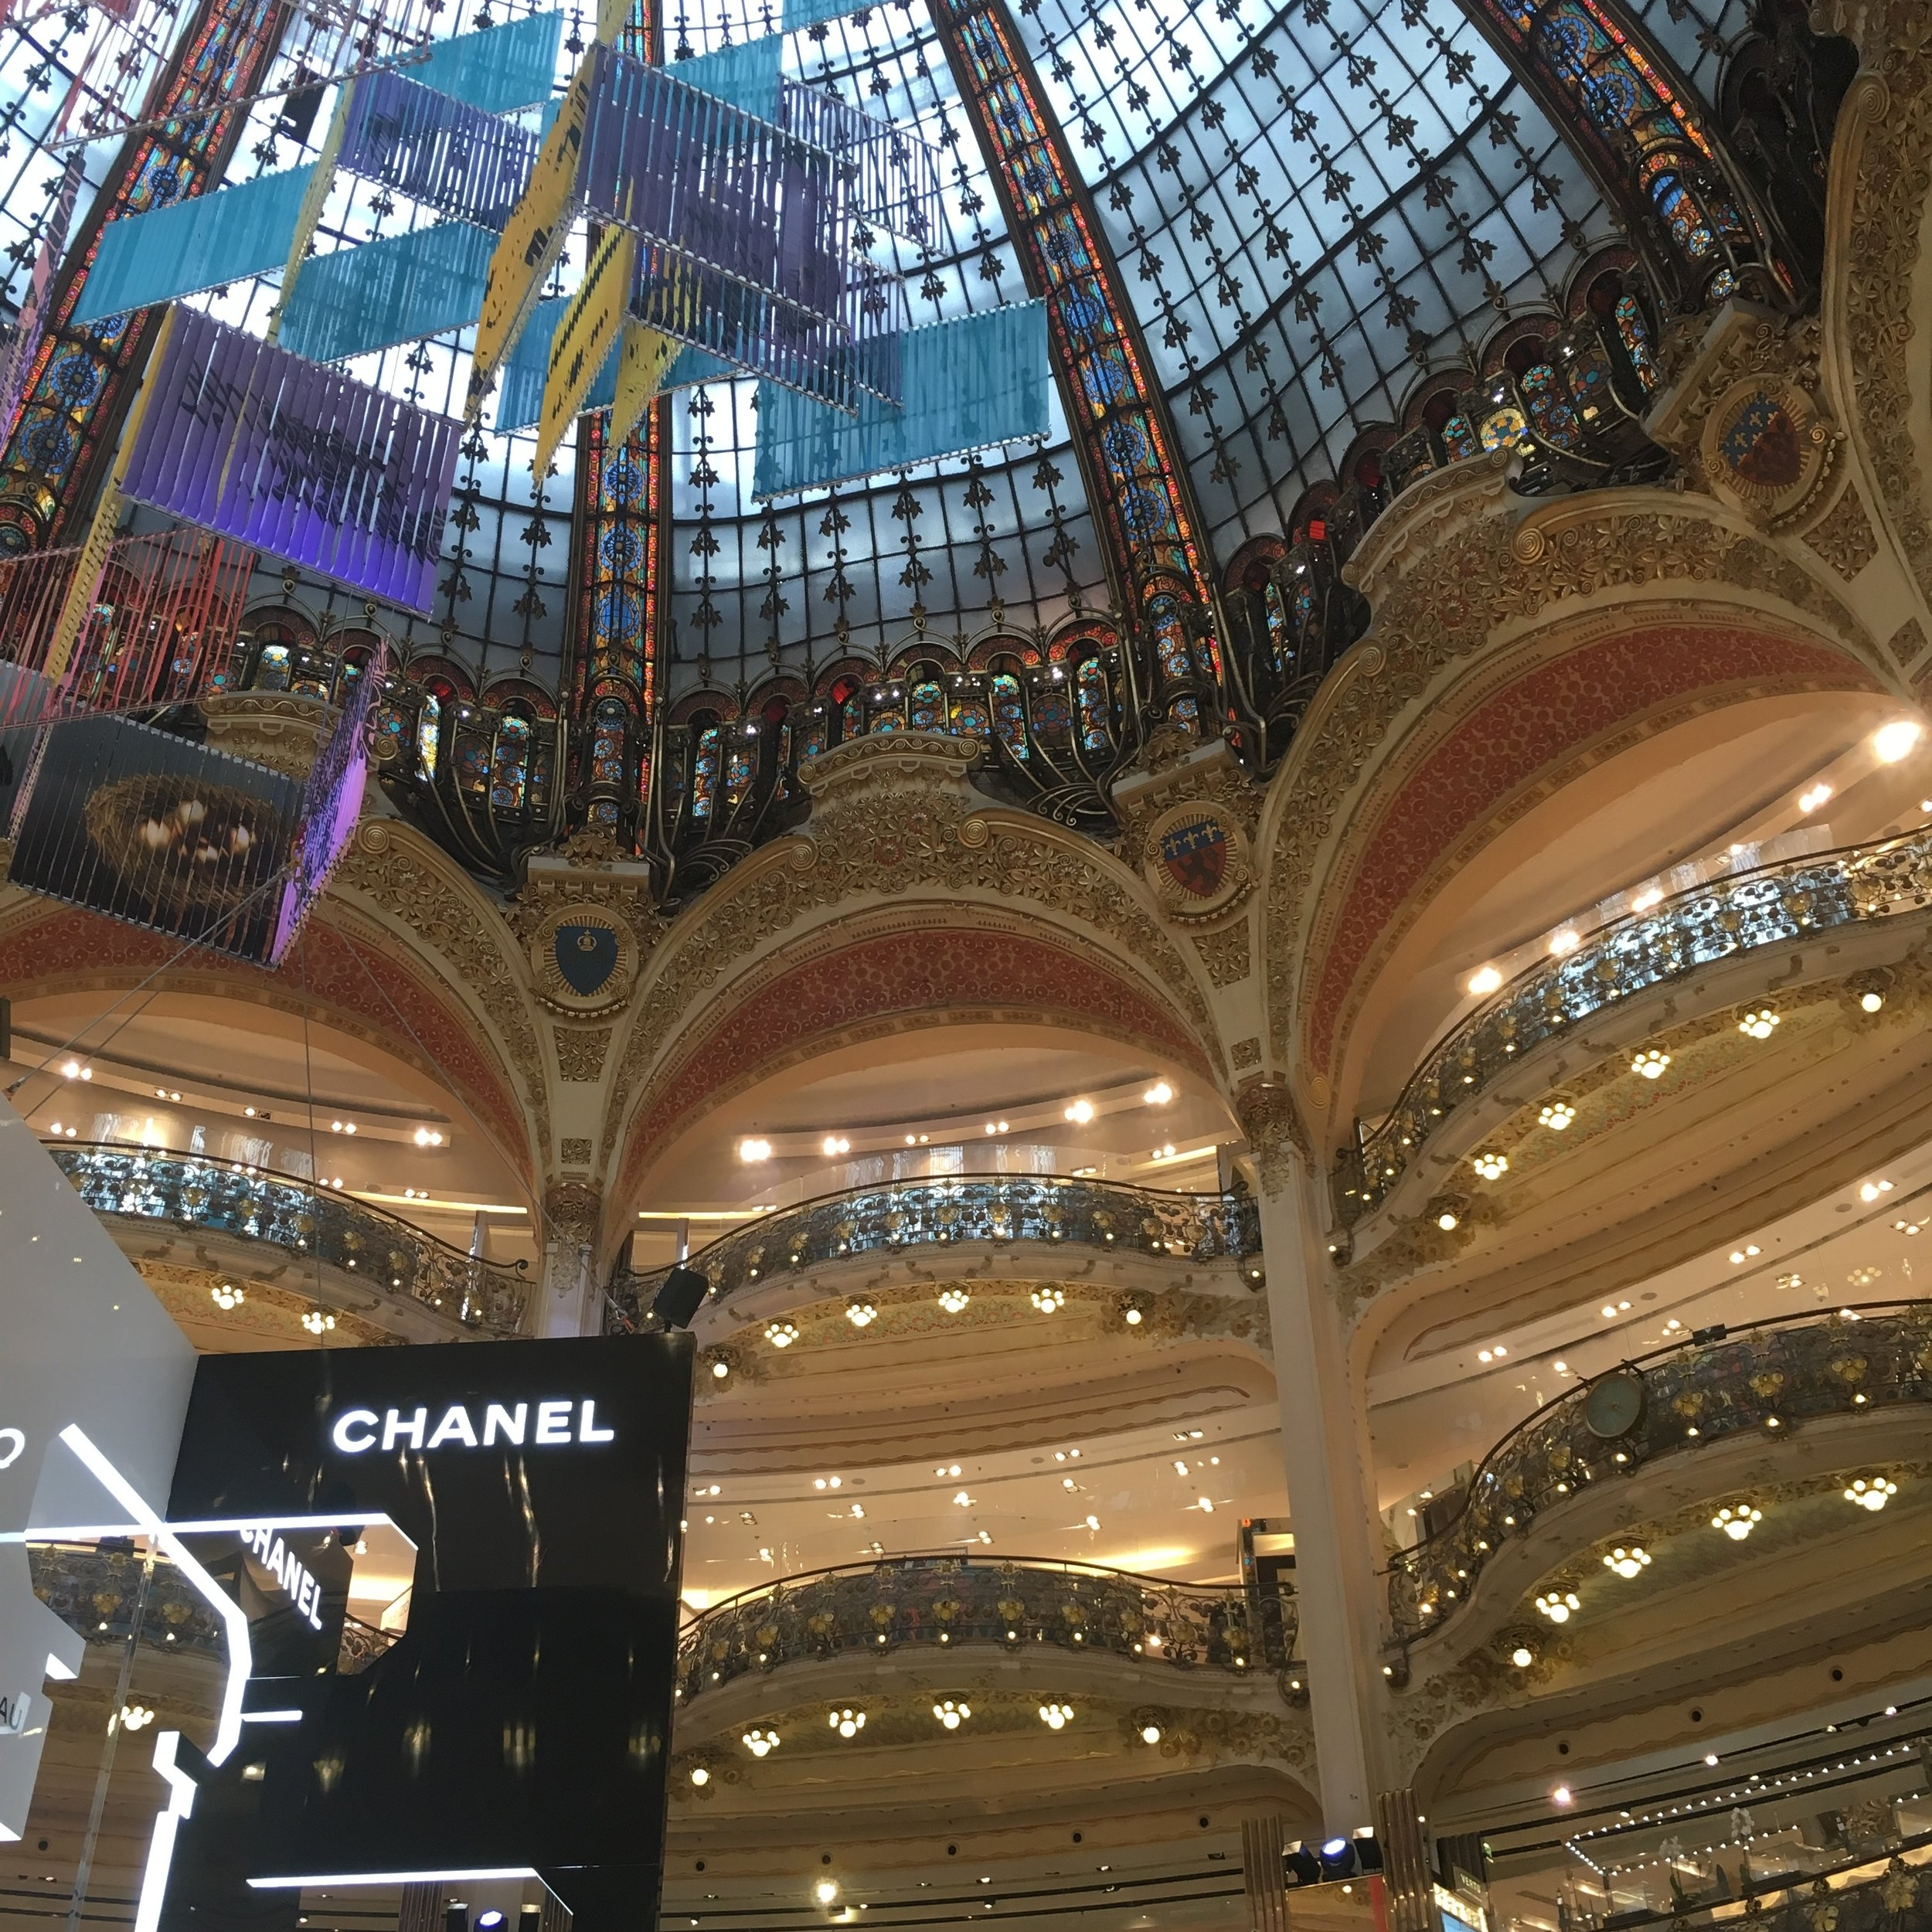 Galerie Lafayette, Paris by The Doubtful Traveller